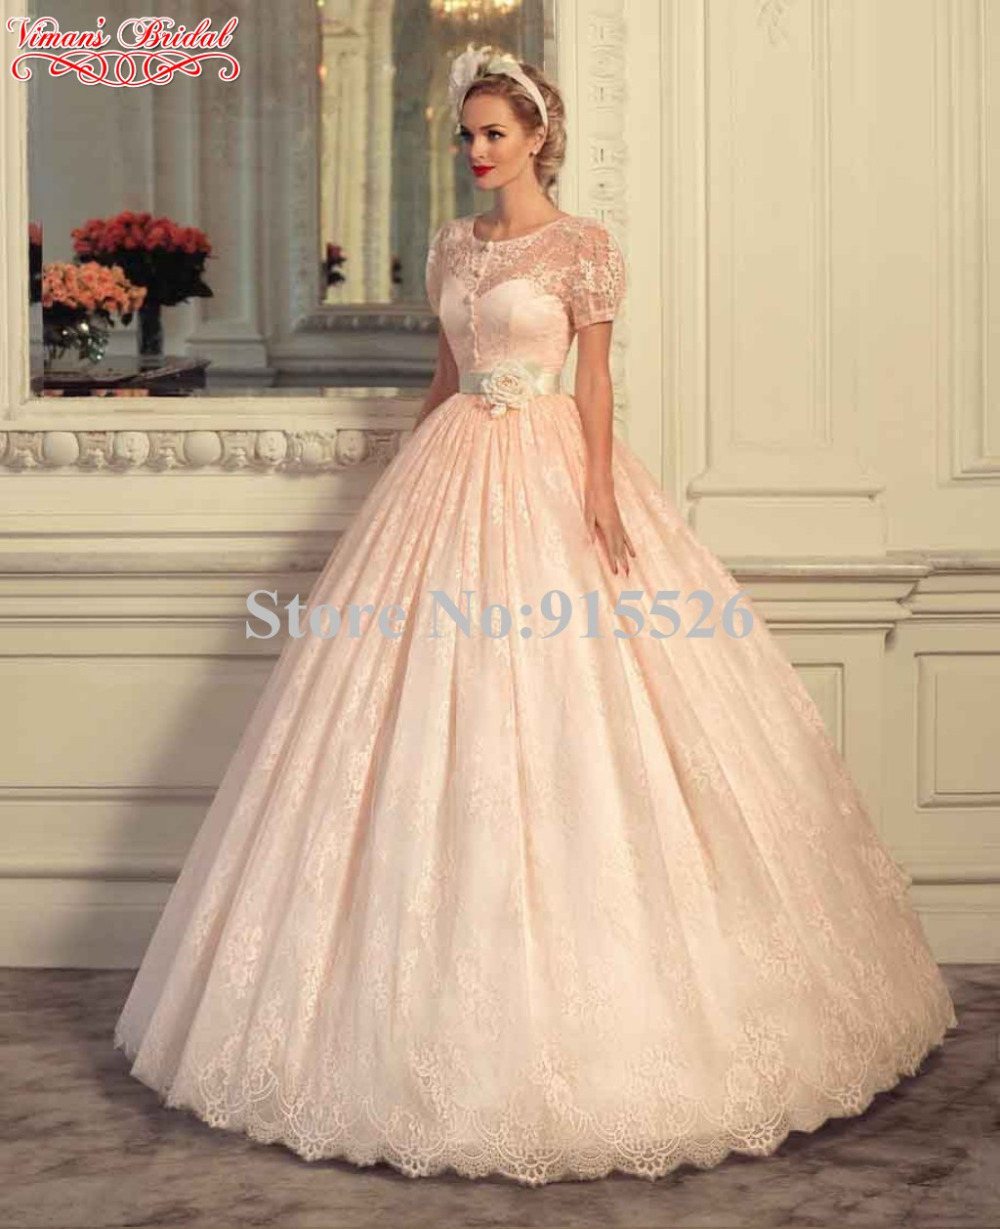 a93cf0efc05 2015 Viman s Bridal Peach Colored Wedding Dresses Appliques Lace  Floor-Length Ball Gown Vestidos With Sashes Free Shipping AX37